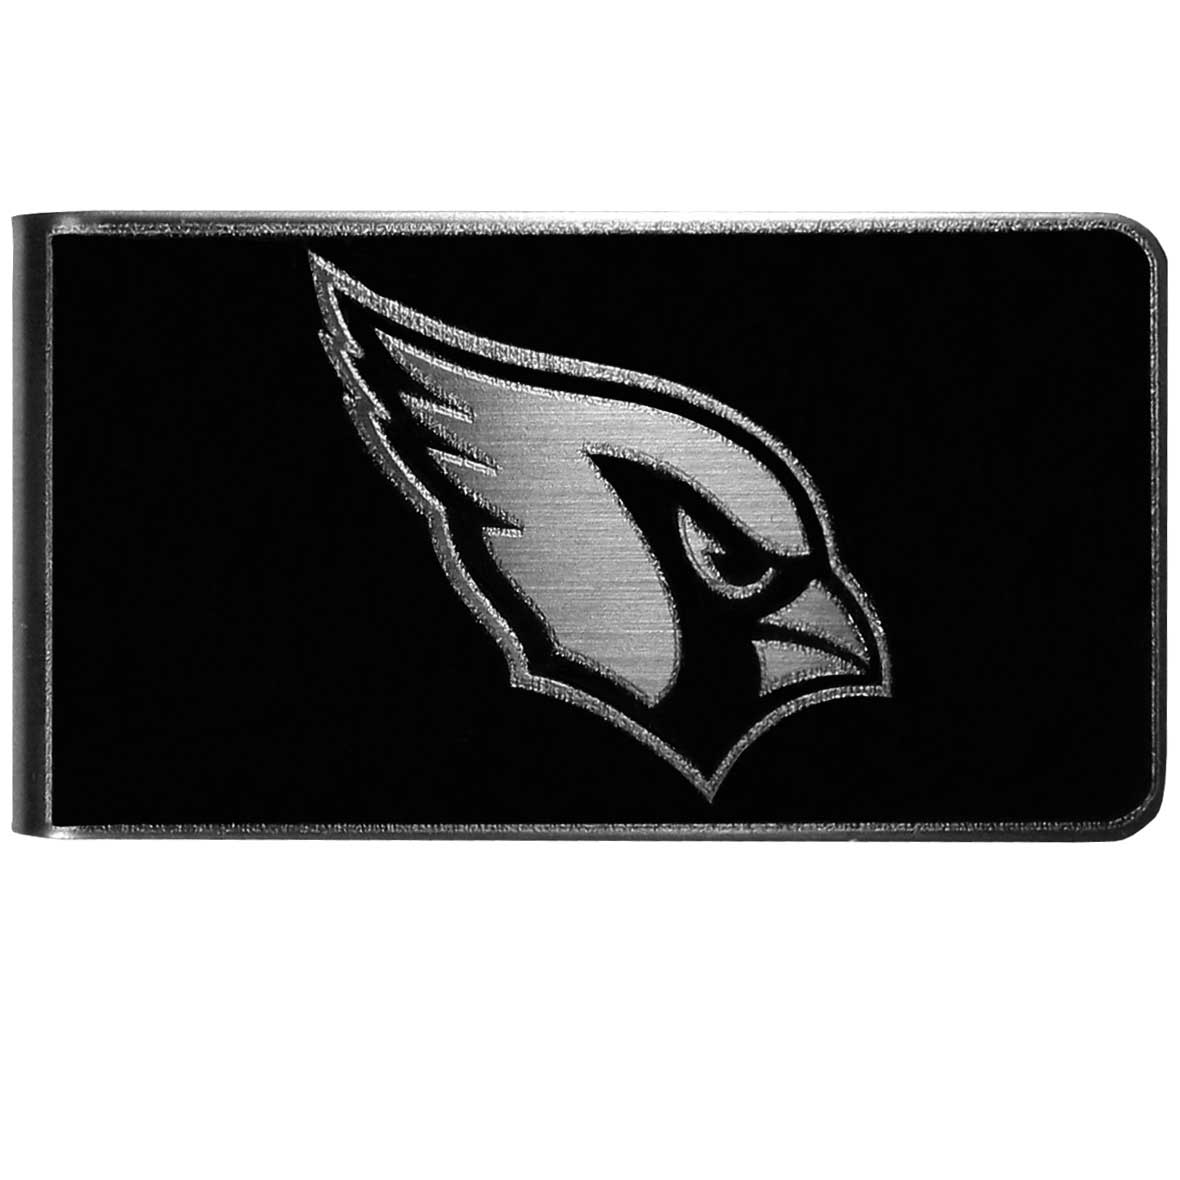 Arizona Cardinals Black and Steel Money Clip - Our monochromatic steel money clips have a classic style and superior quality. The strong, steel clip has a black overlay of the Arizona Cardinals logo over the brushed metal finish creating a stylish men's fashion accessory that would make any fan proud.